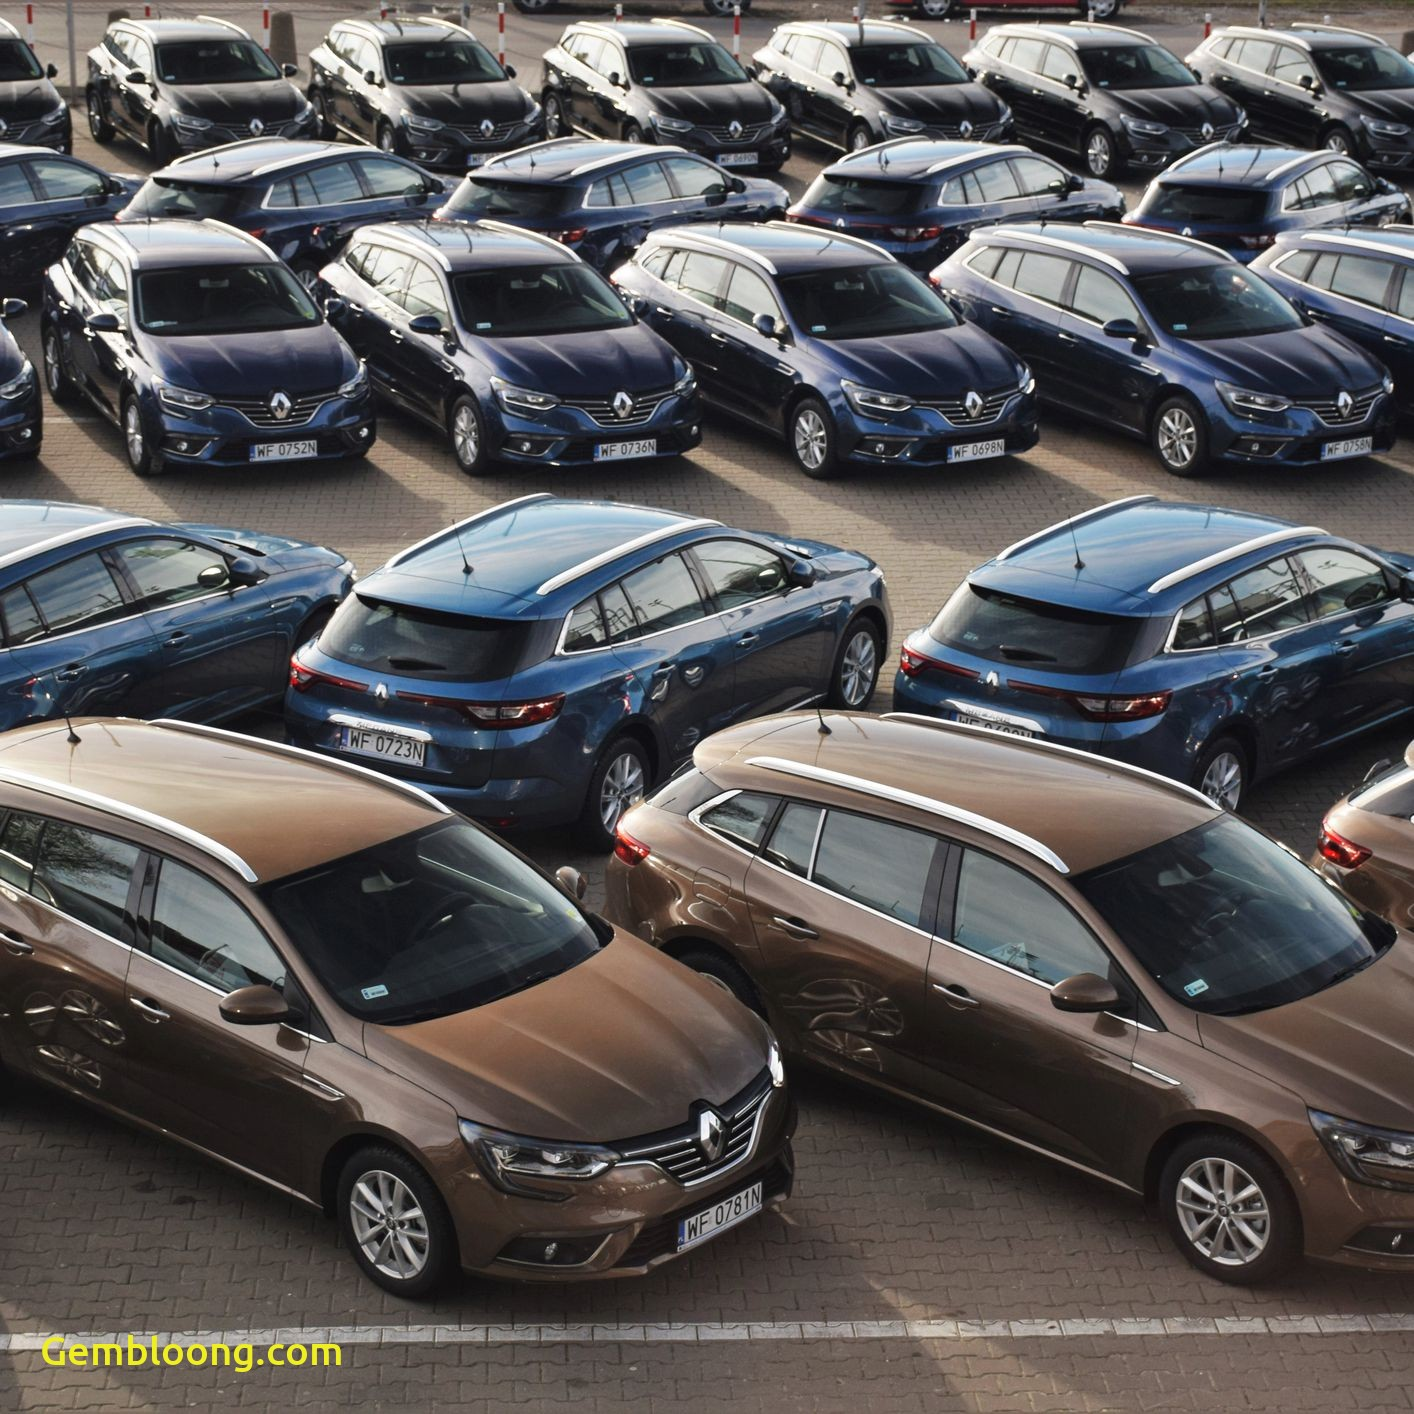 Rental Cars for Sale Near Me Inspirational New Vs Used Car Buying Advice and Tips